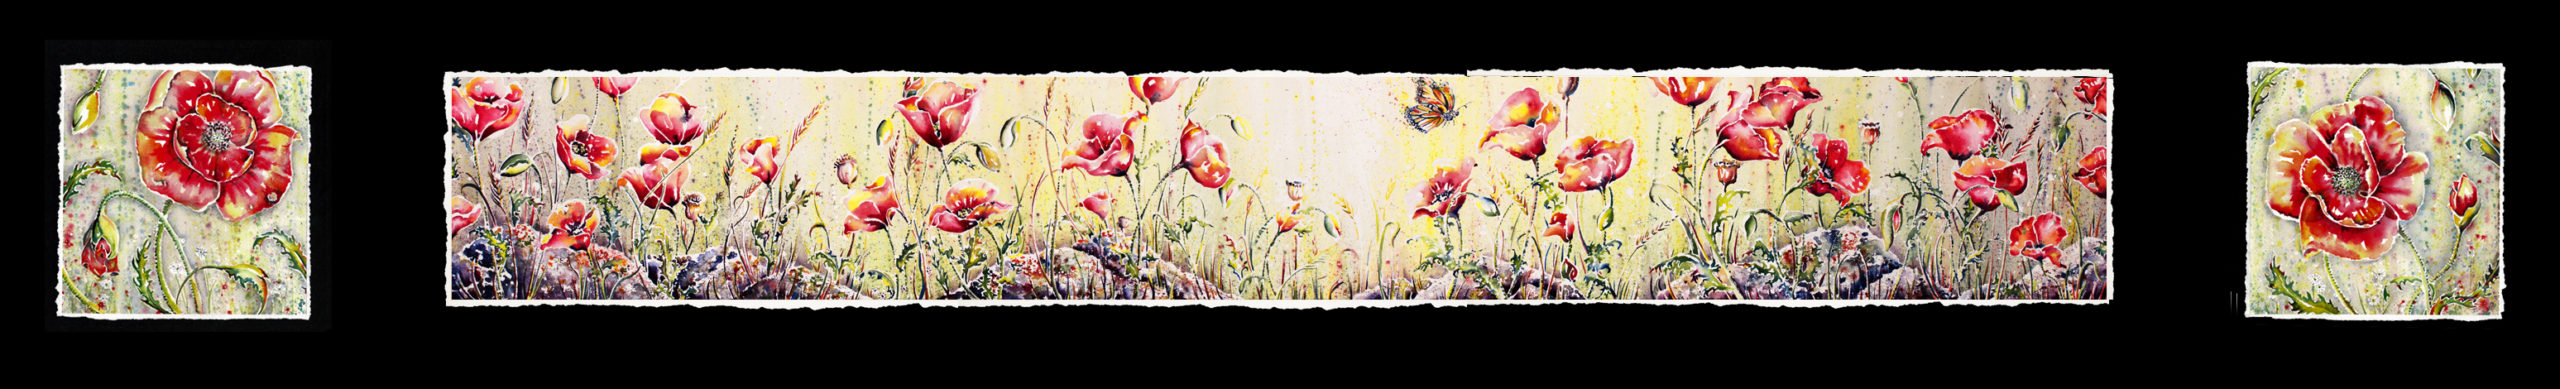 Davys Poppies Triptych